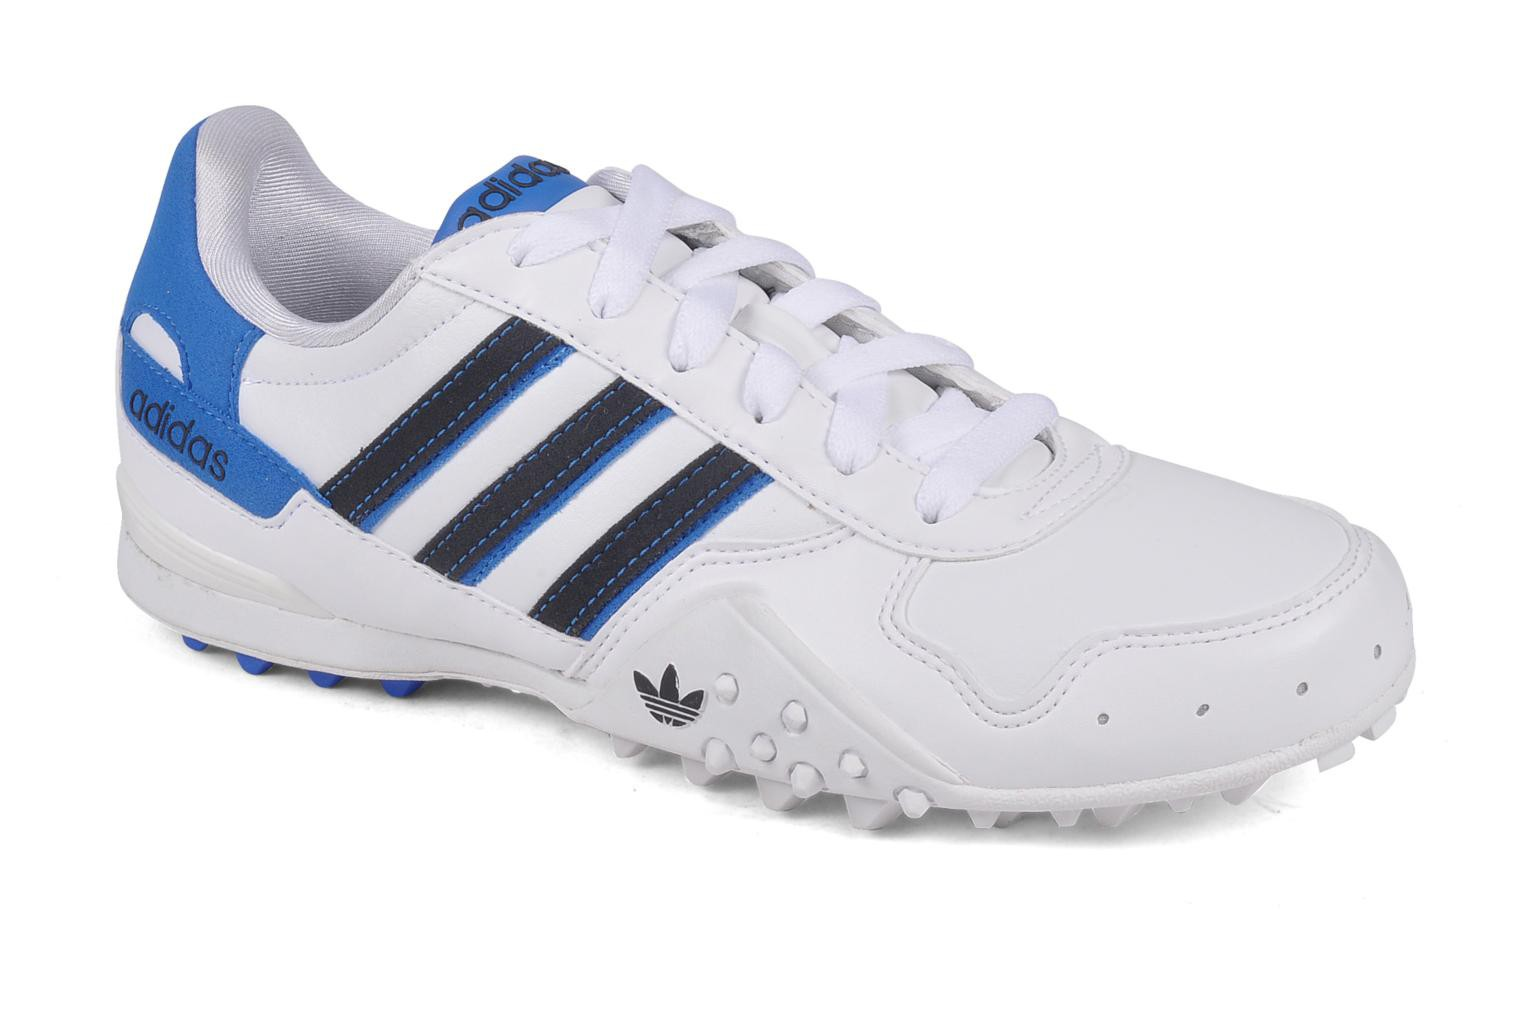 Chaussure Adidas Adidas Country Chaussure X X X Adidas Adidas Country Chaussure Country Chaussure gYbf7v6y